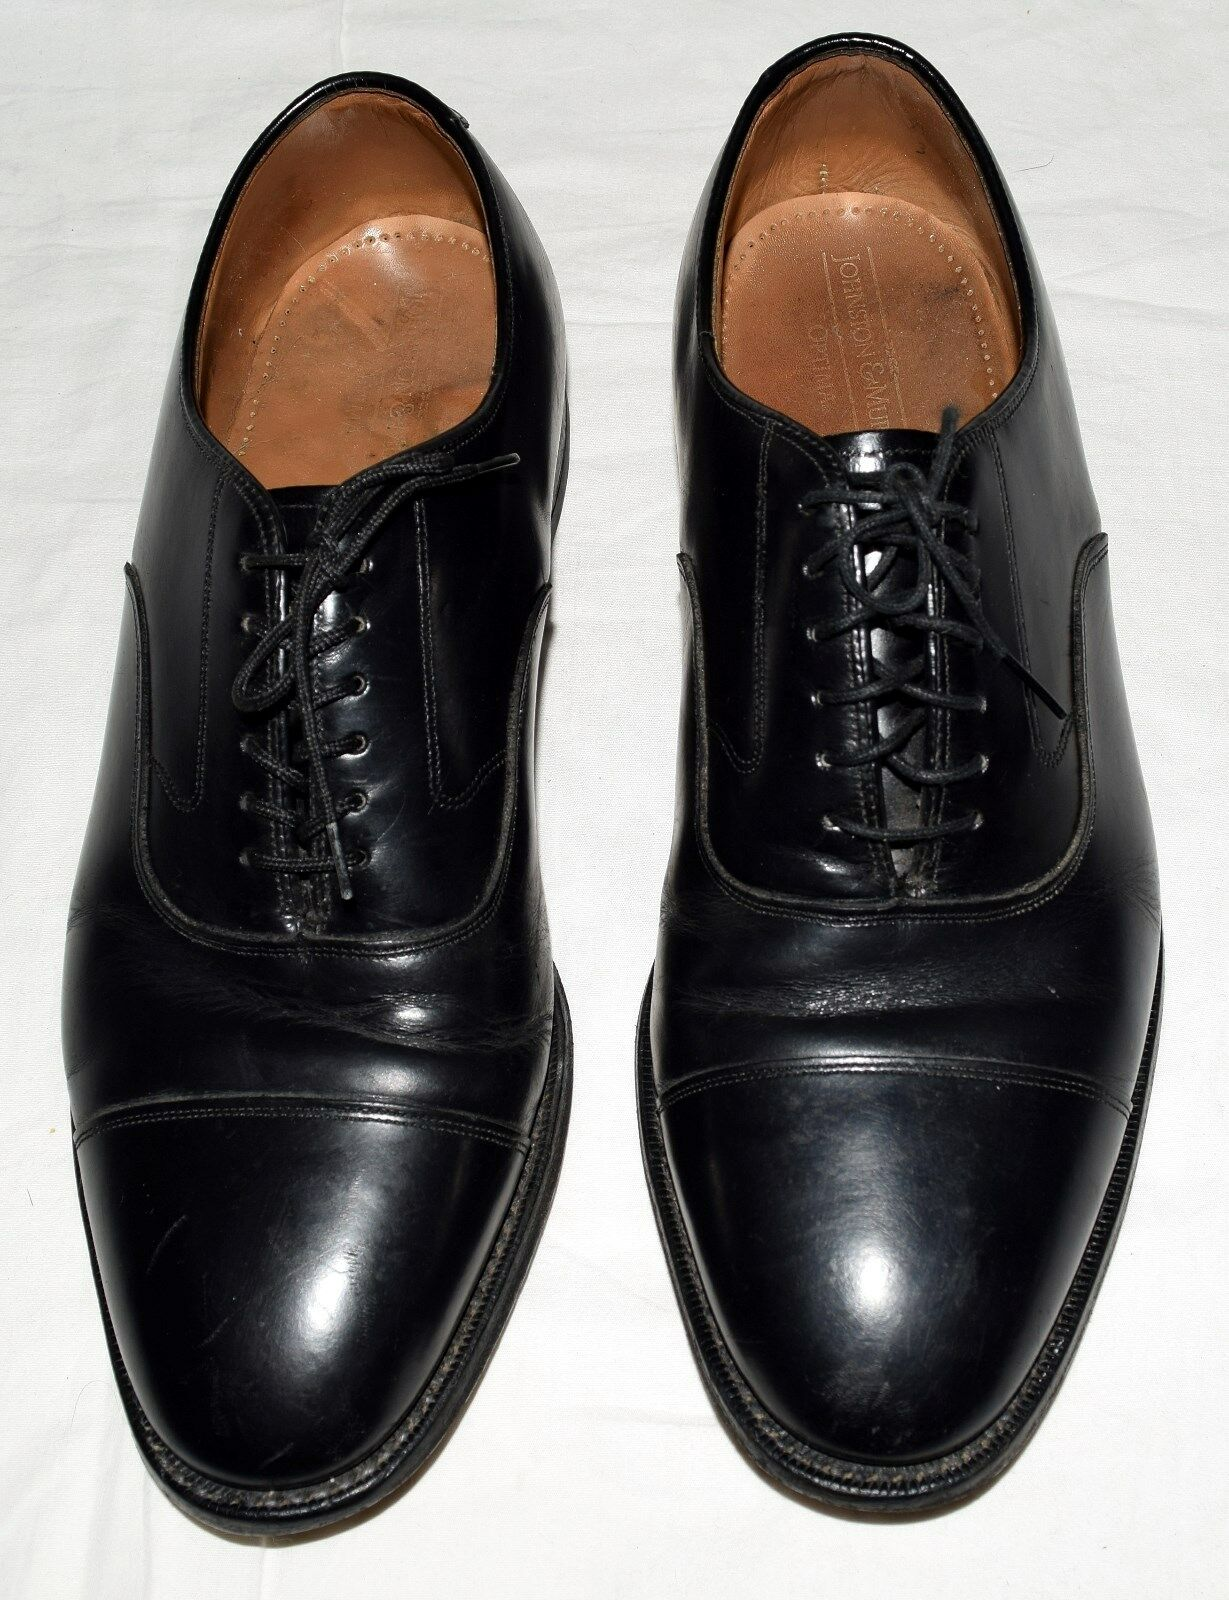 Johnston & Murphy Optima Black Leather Cap Toes Mens Oxford shoes Size 9.5 M USA